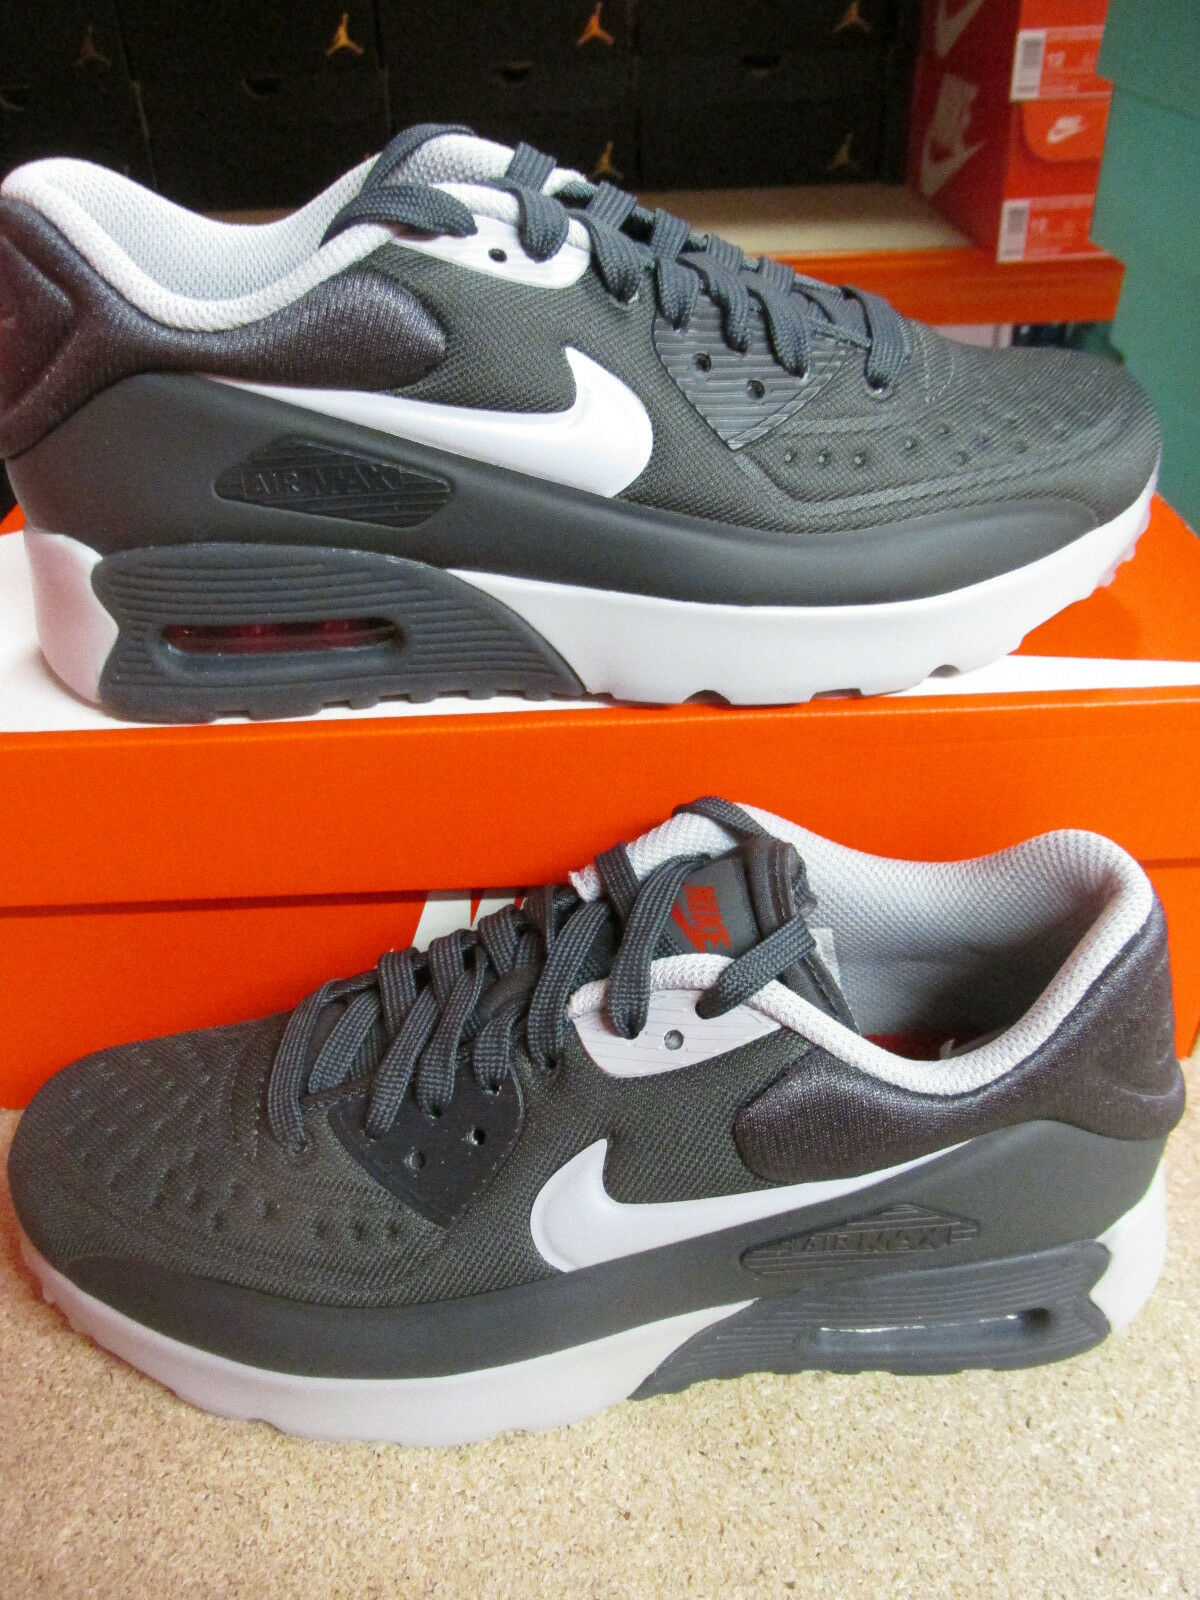 Nike Air Max 90 Ultra SE (GS) Running Trainers 844599 005 Sneakers Shoes